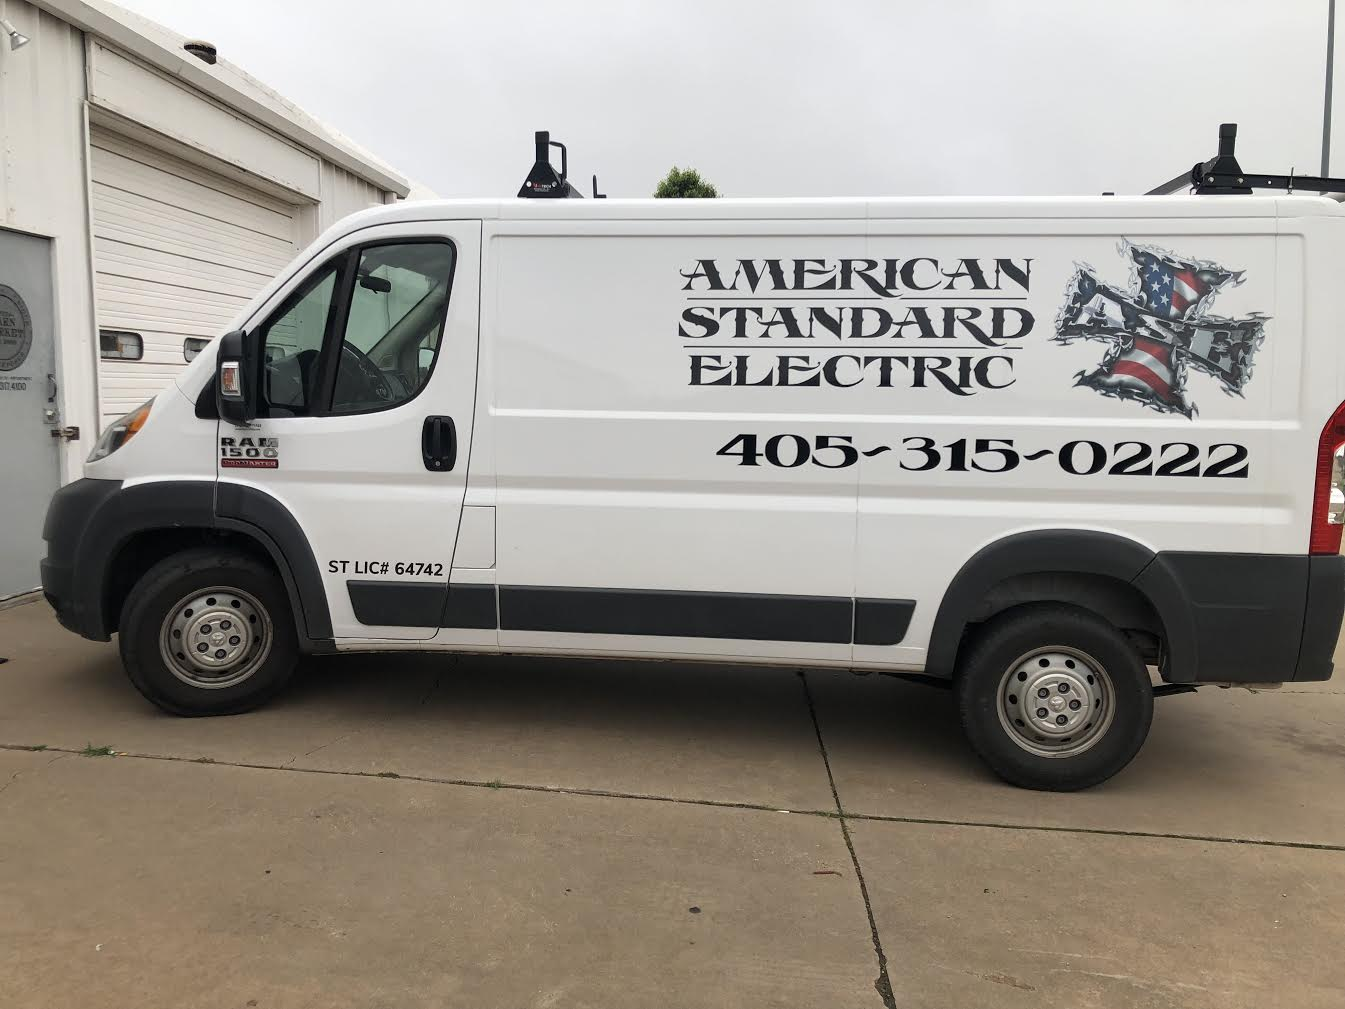 Oklahoma's Top Rated Local® Electricians Award Winner: American Standard Electric